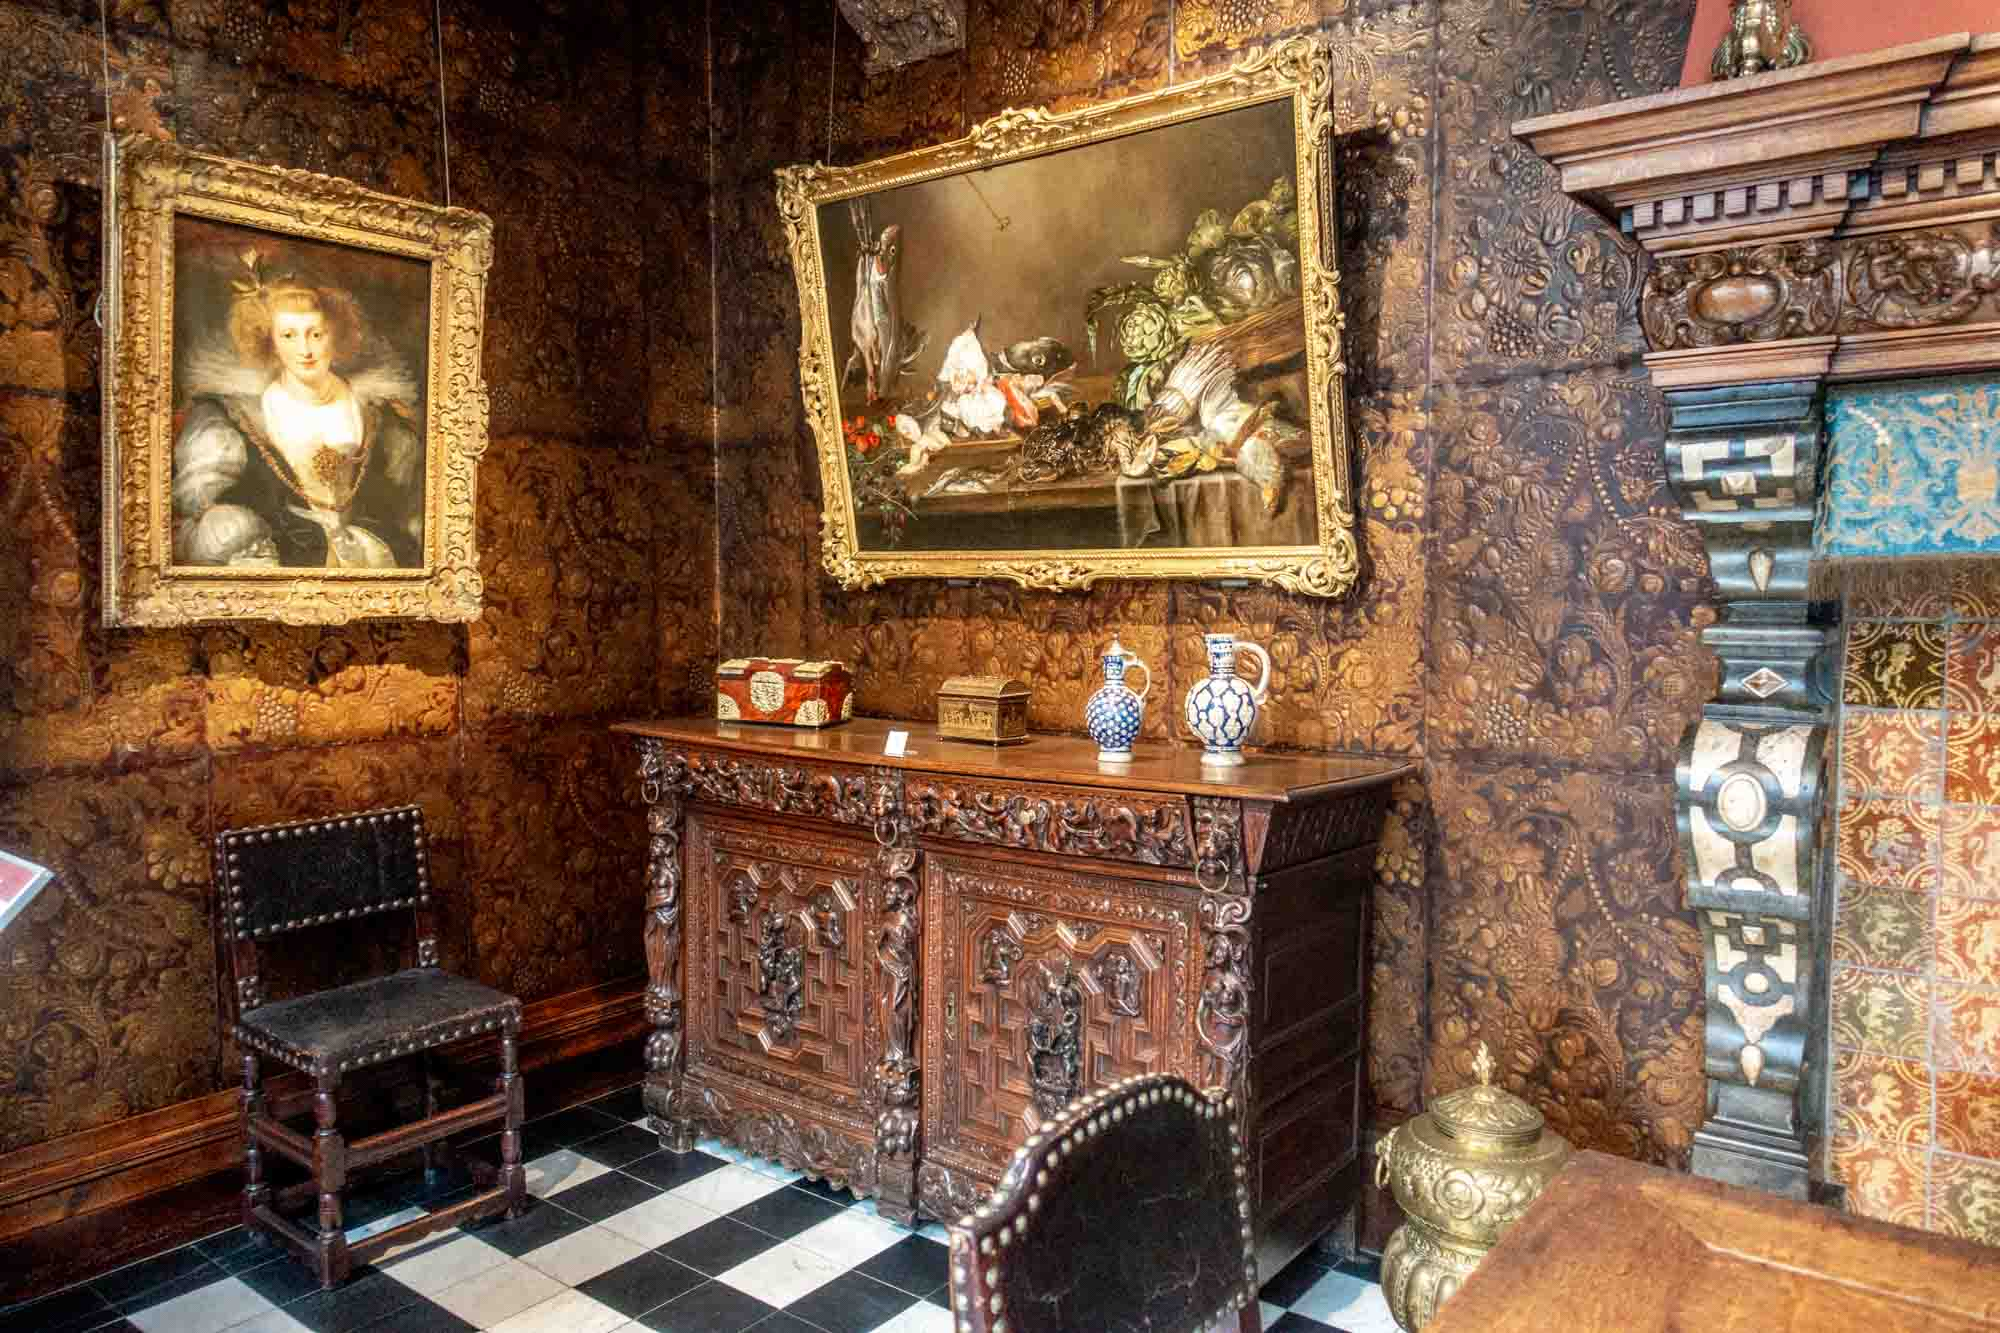 Room with paintings, furniture, and elaborate wall coverings